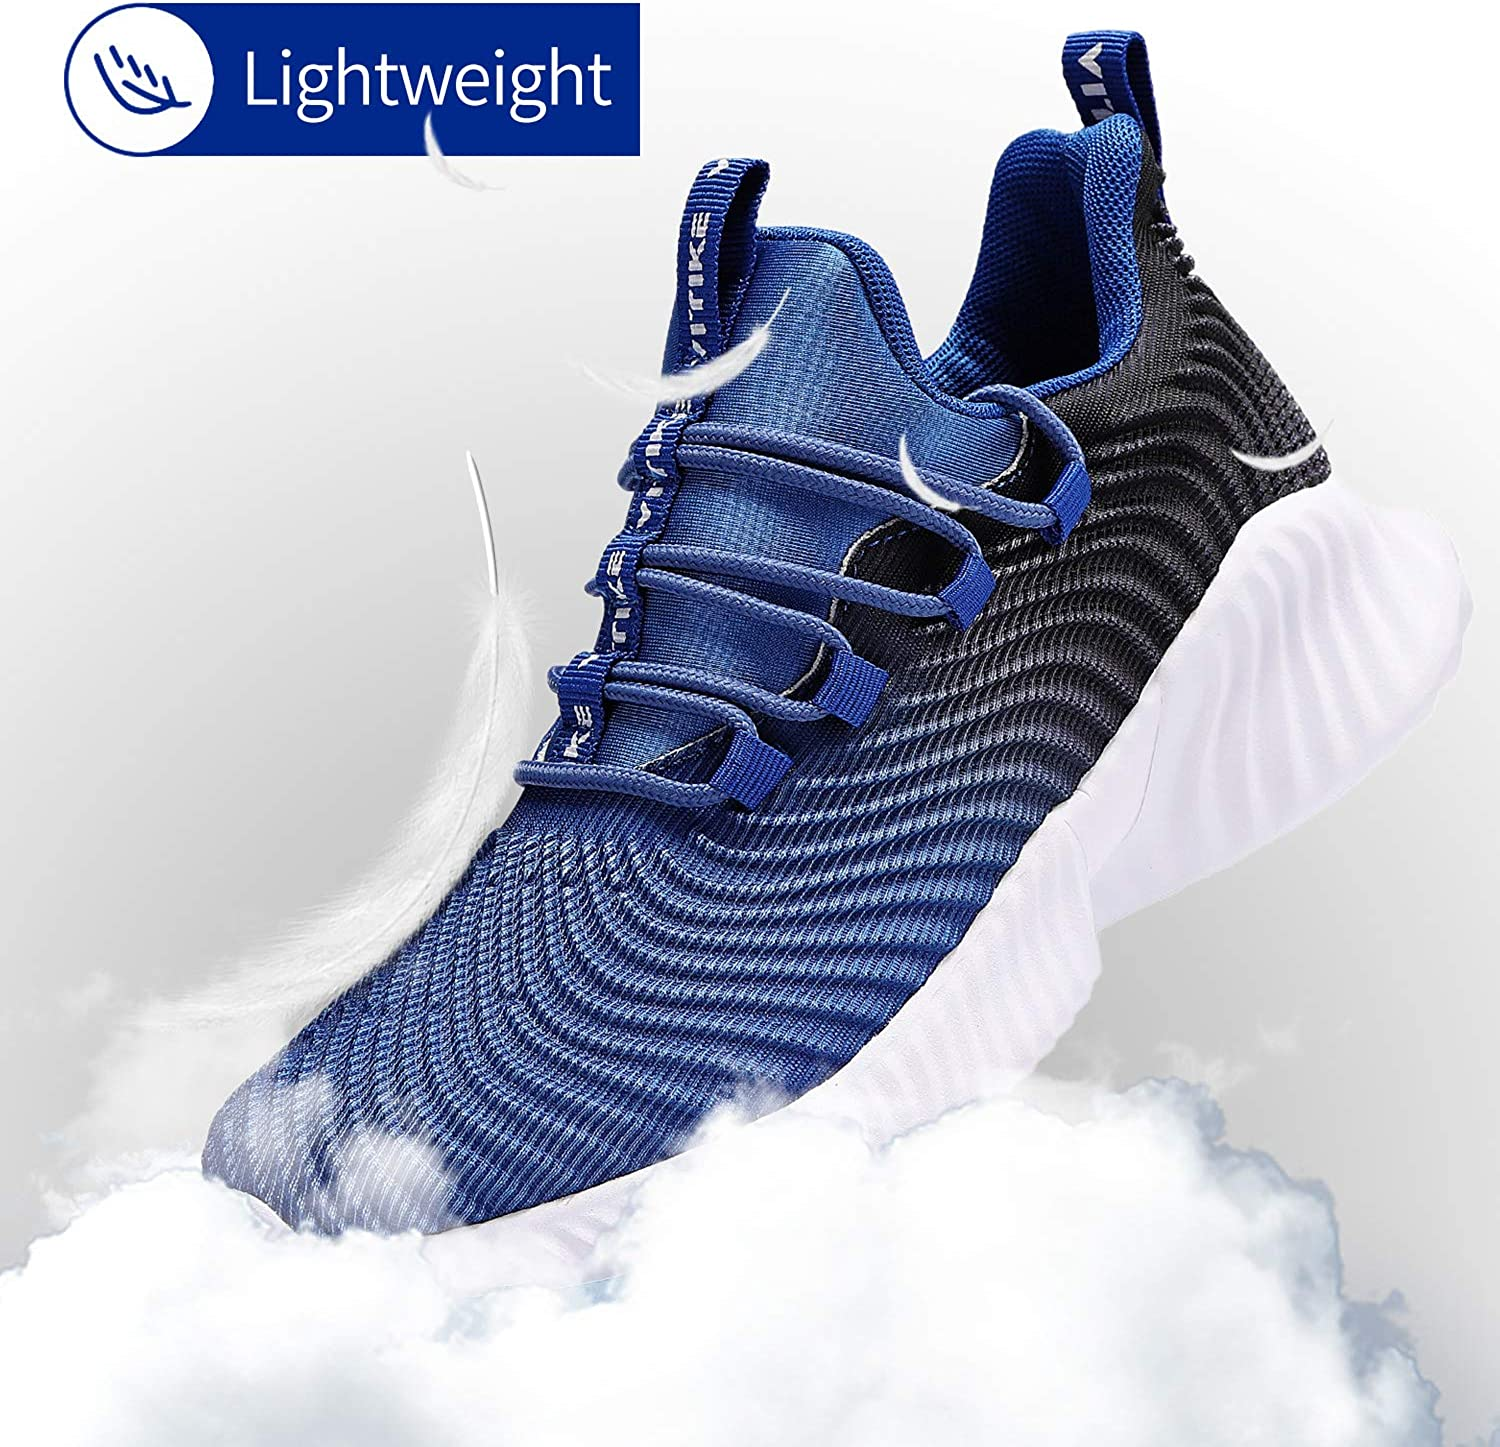 FANGFIUP Boys Running Shoes Kids Sneakers Girls Athletic Tennis Shoe Breathable Lightweight Slip on Sports Knit Sock Sneaker for Little Big Kid